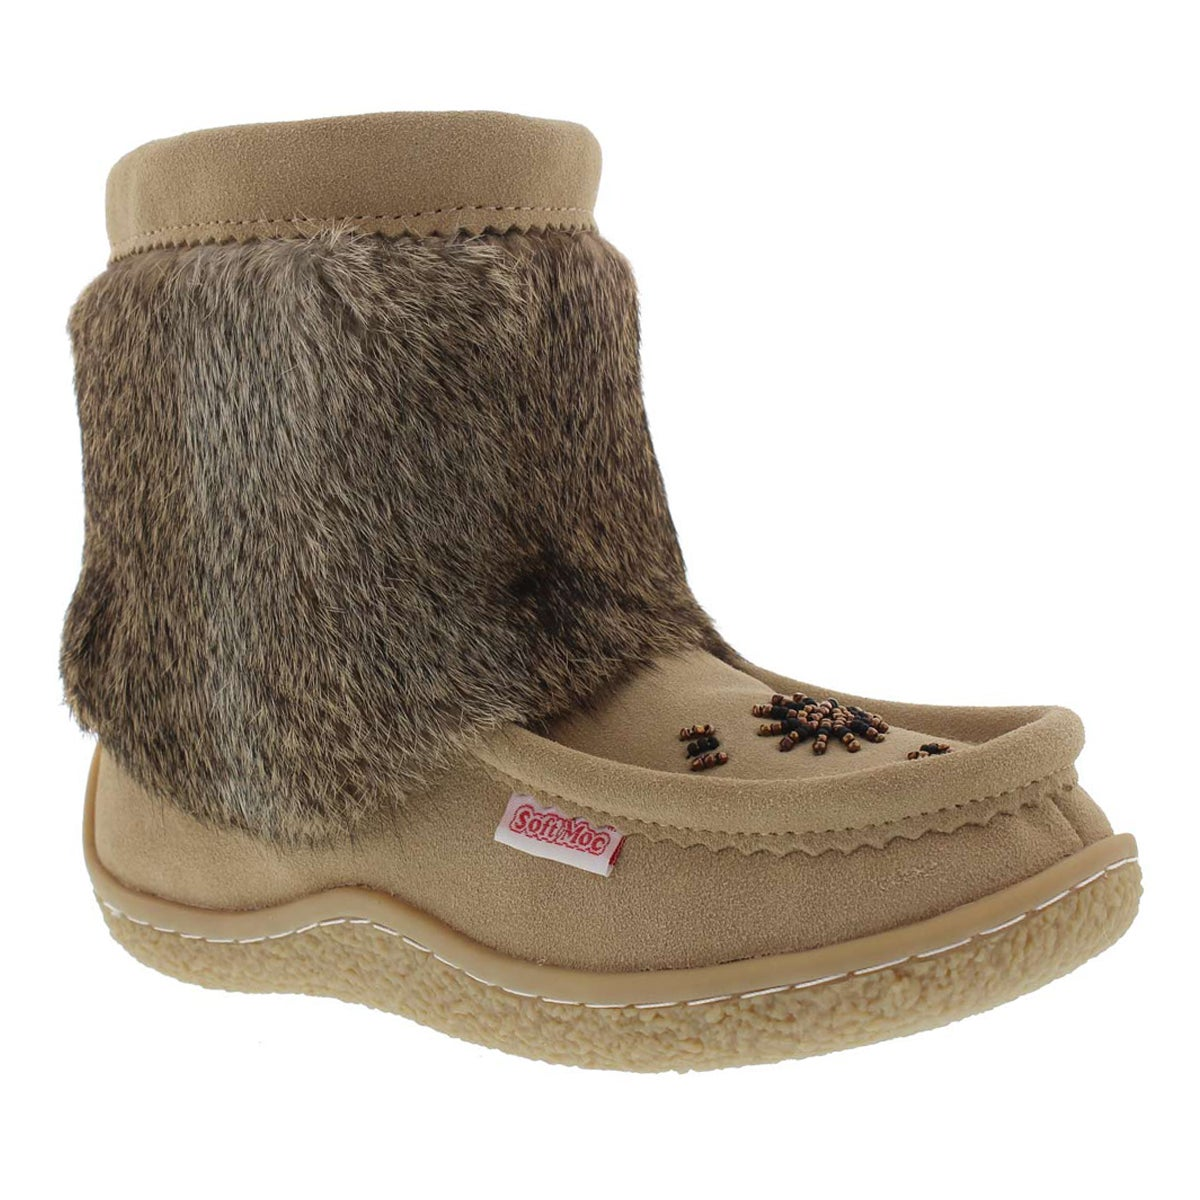 Lds Minimuk sand rabbit fur bootie